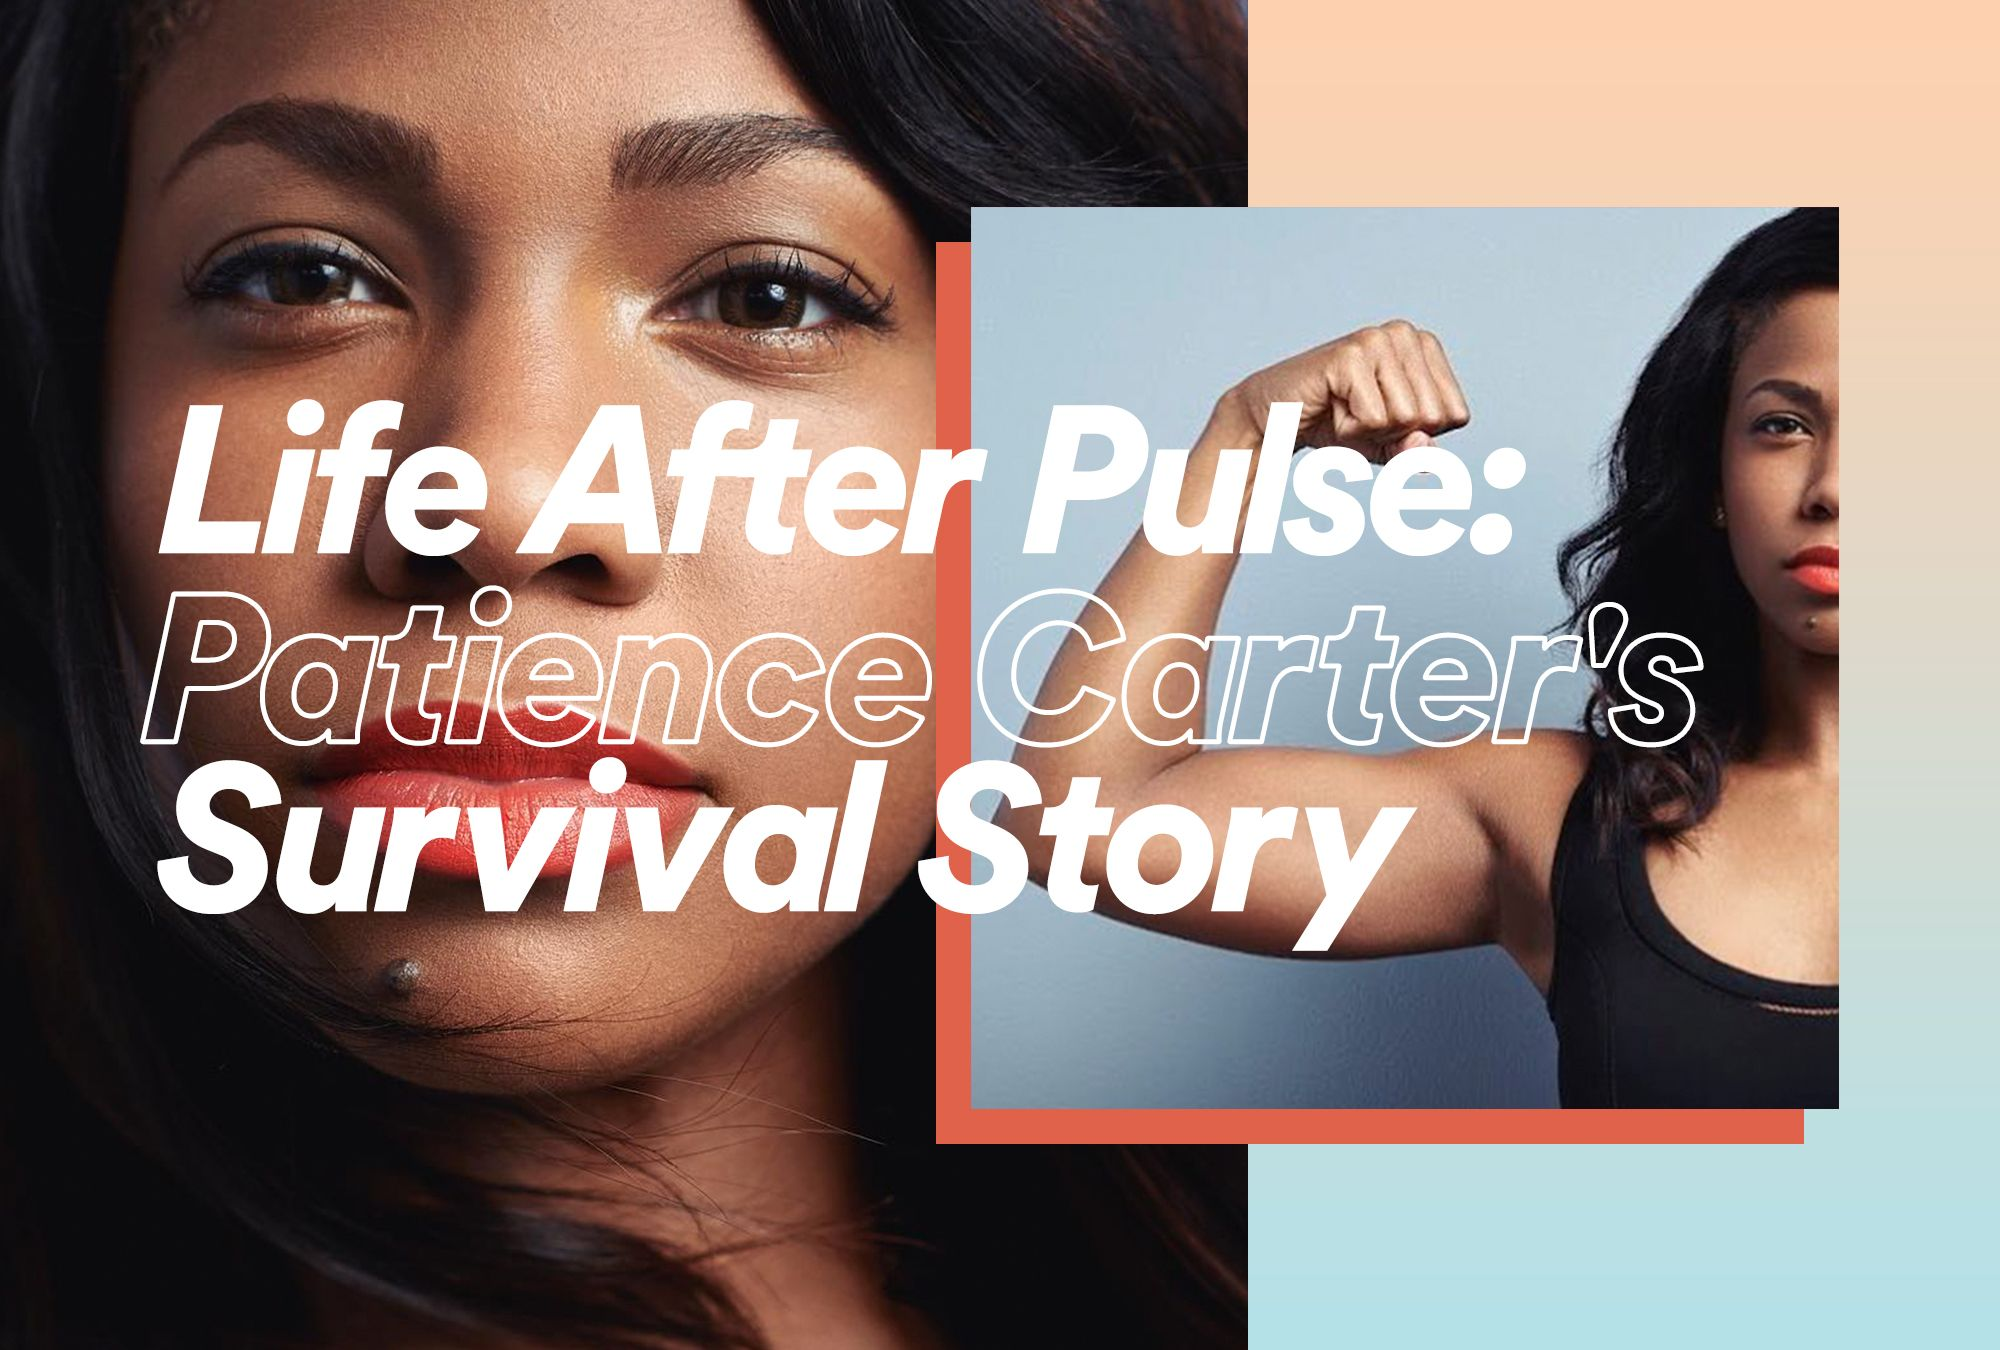 Life After Pulse: Patience Carter's Survival Story